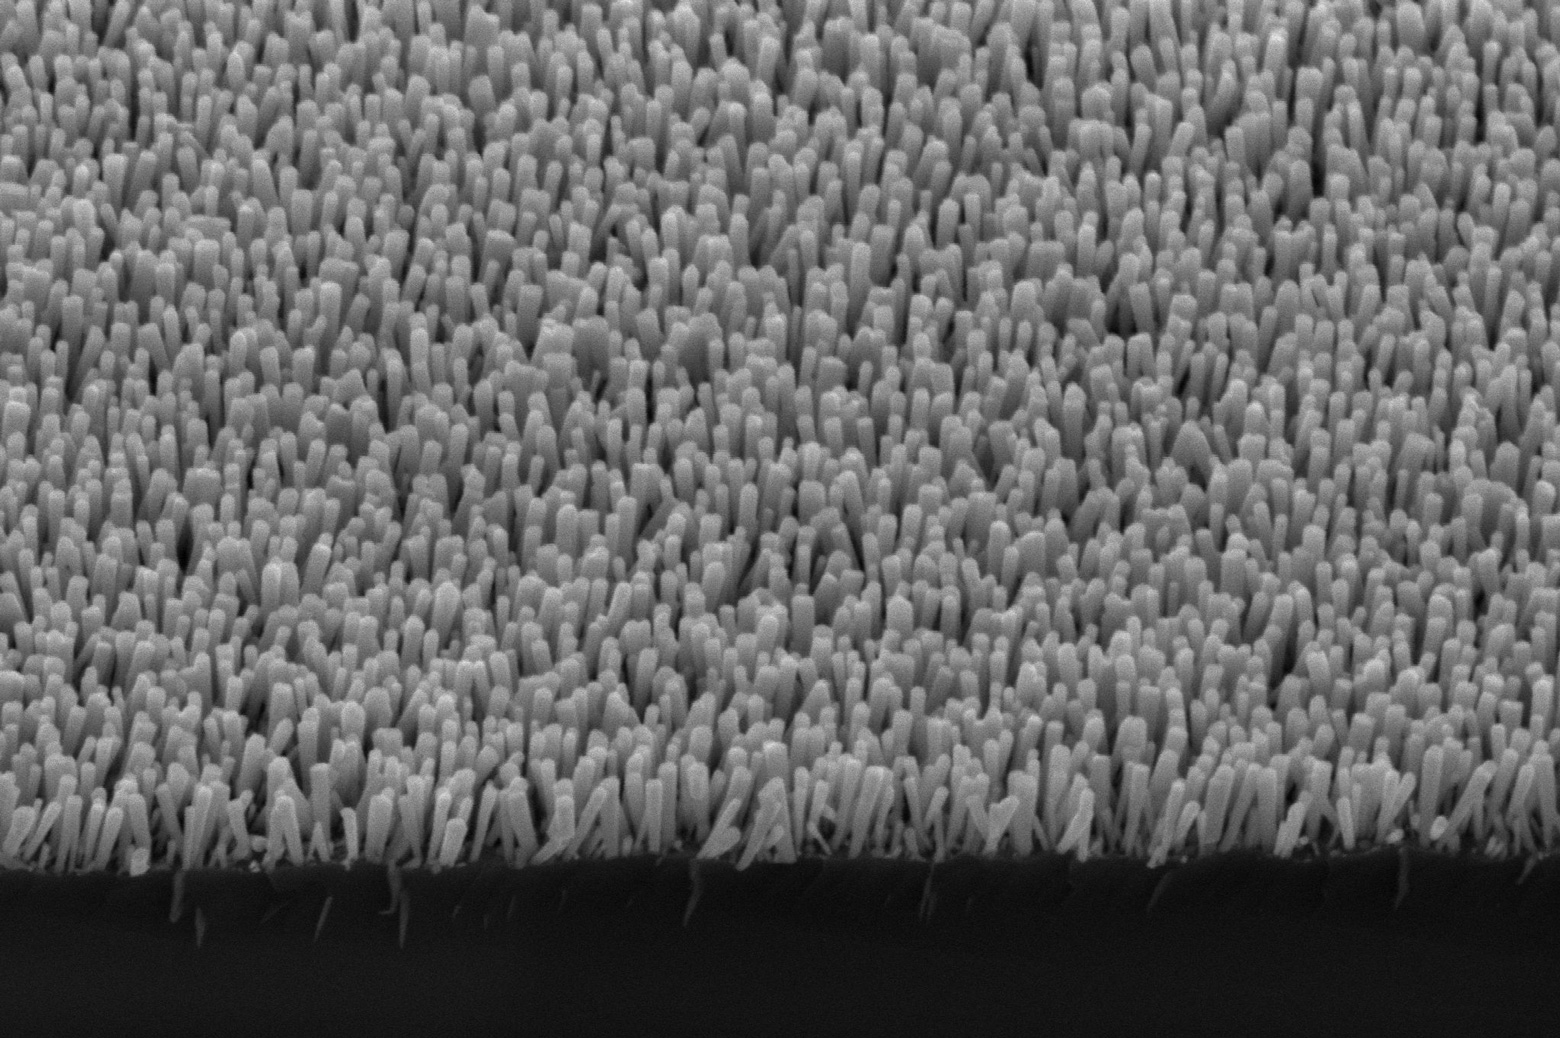 An electron microscope image shows the semiconductor nanowires. These deliver electrons to metal nanoparticles, which turn carbon dioxide and water into methane. Image credit: Baowen Zhou